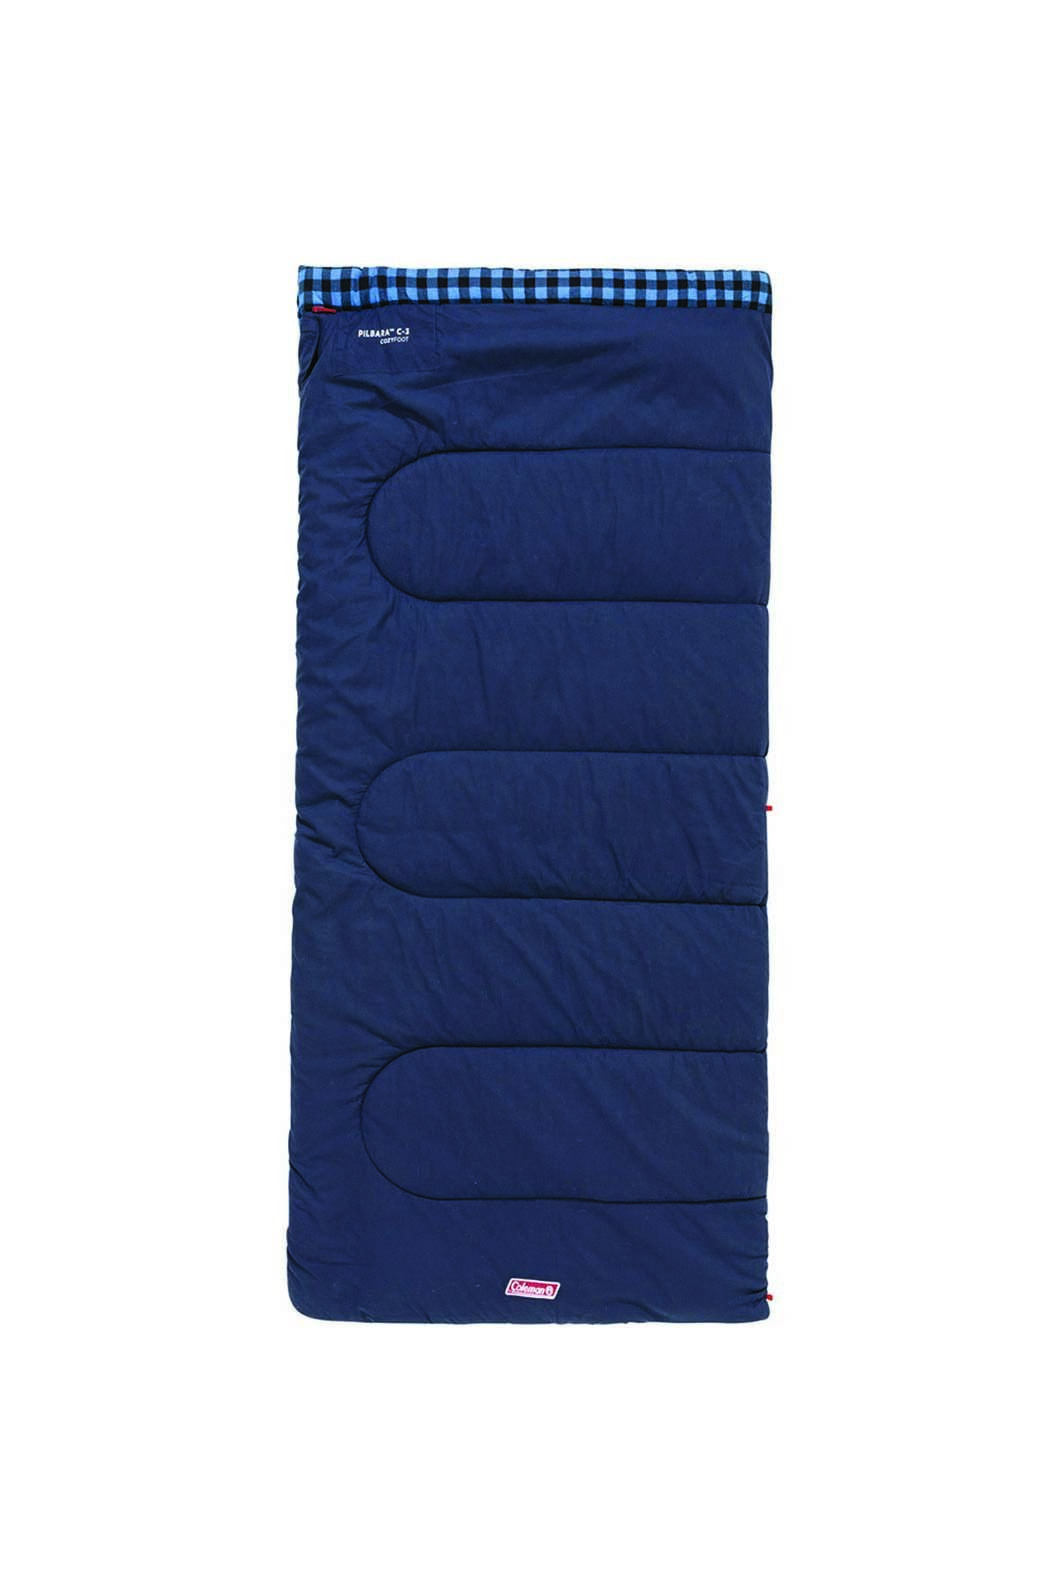 Coleman Pilbara Tall Sleeping Bag -5, None, hi-res